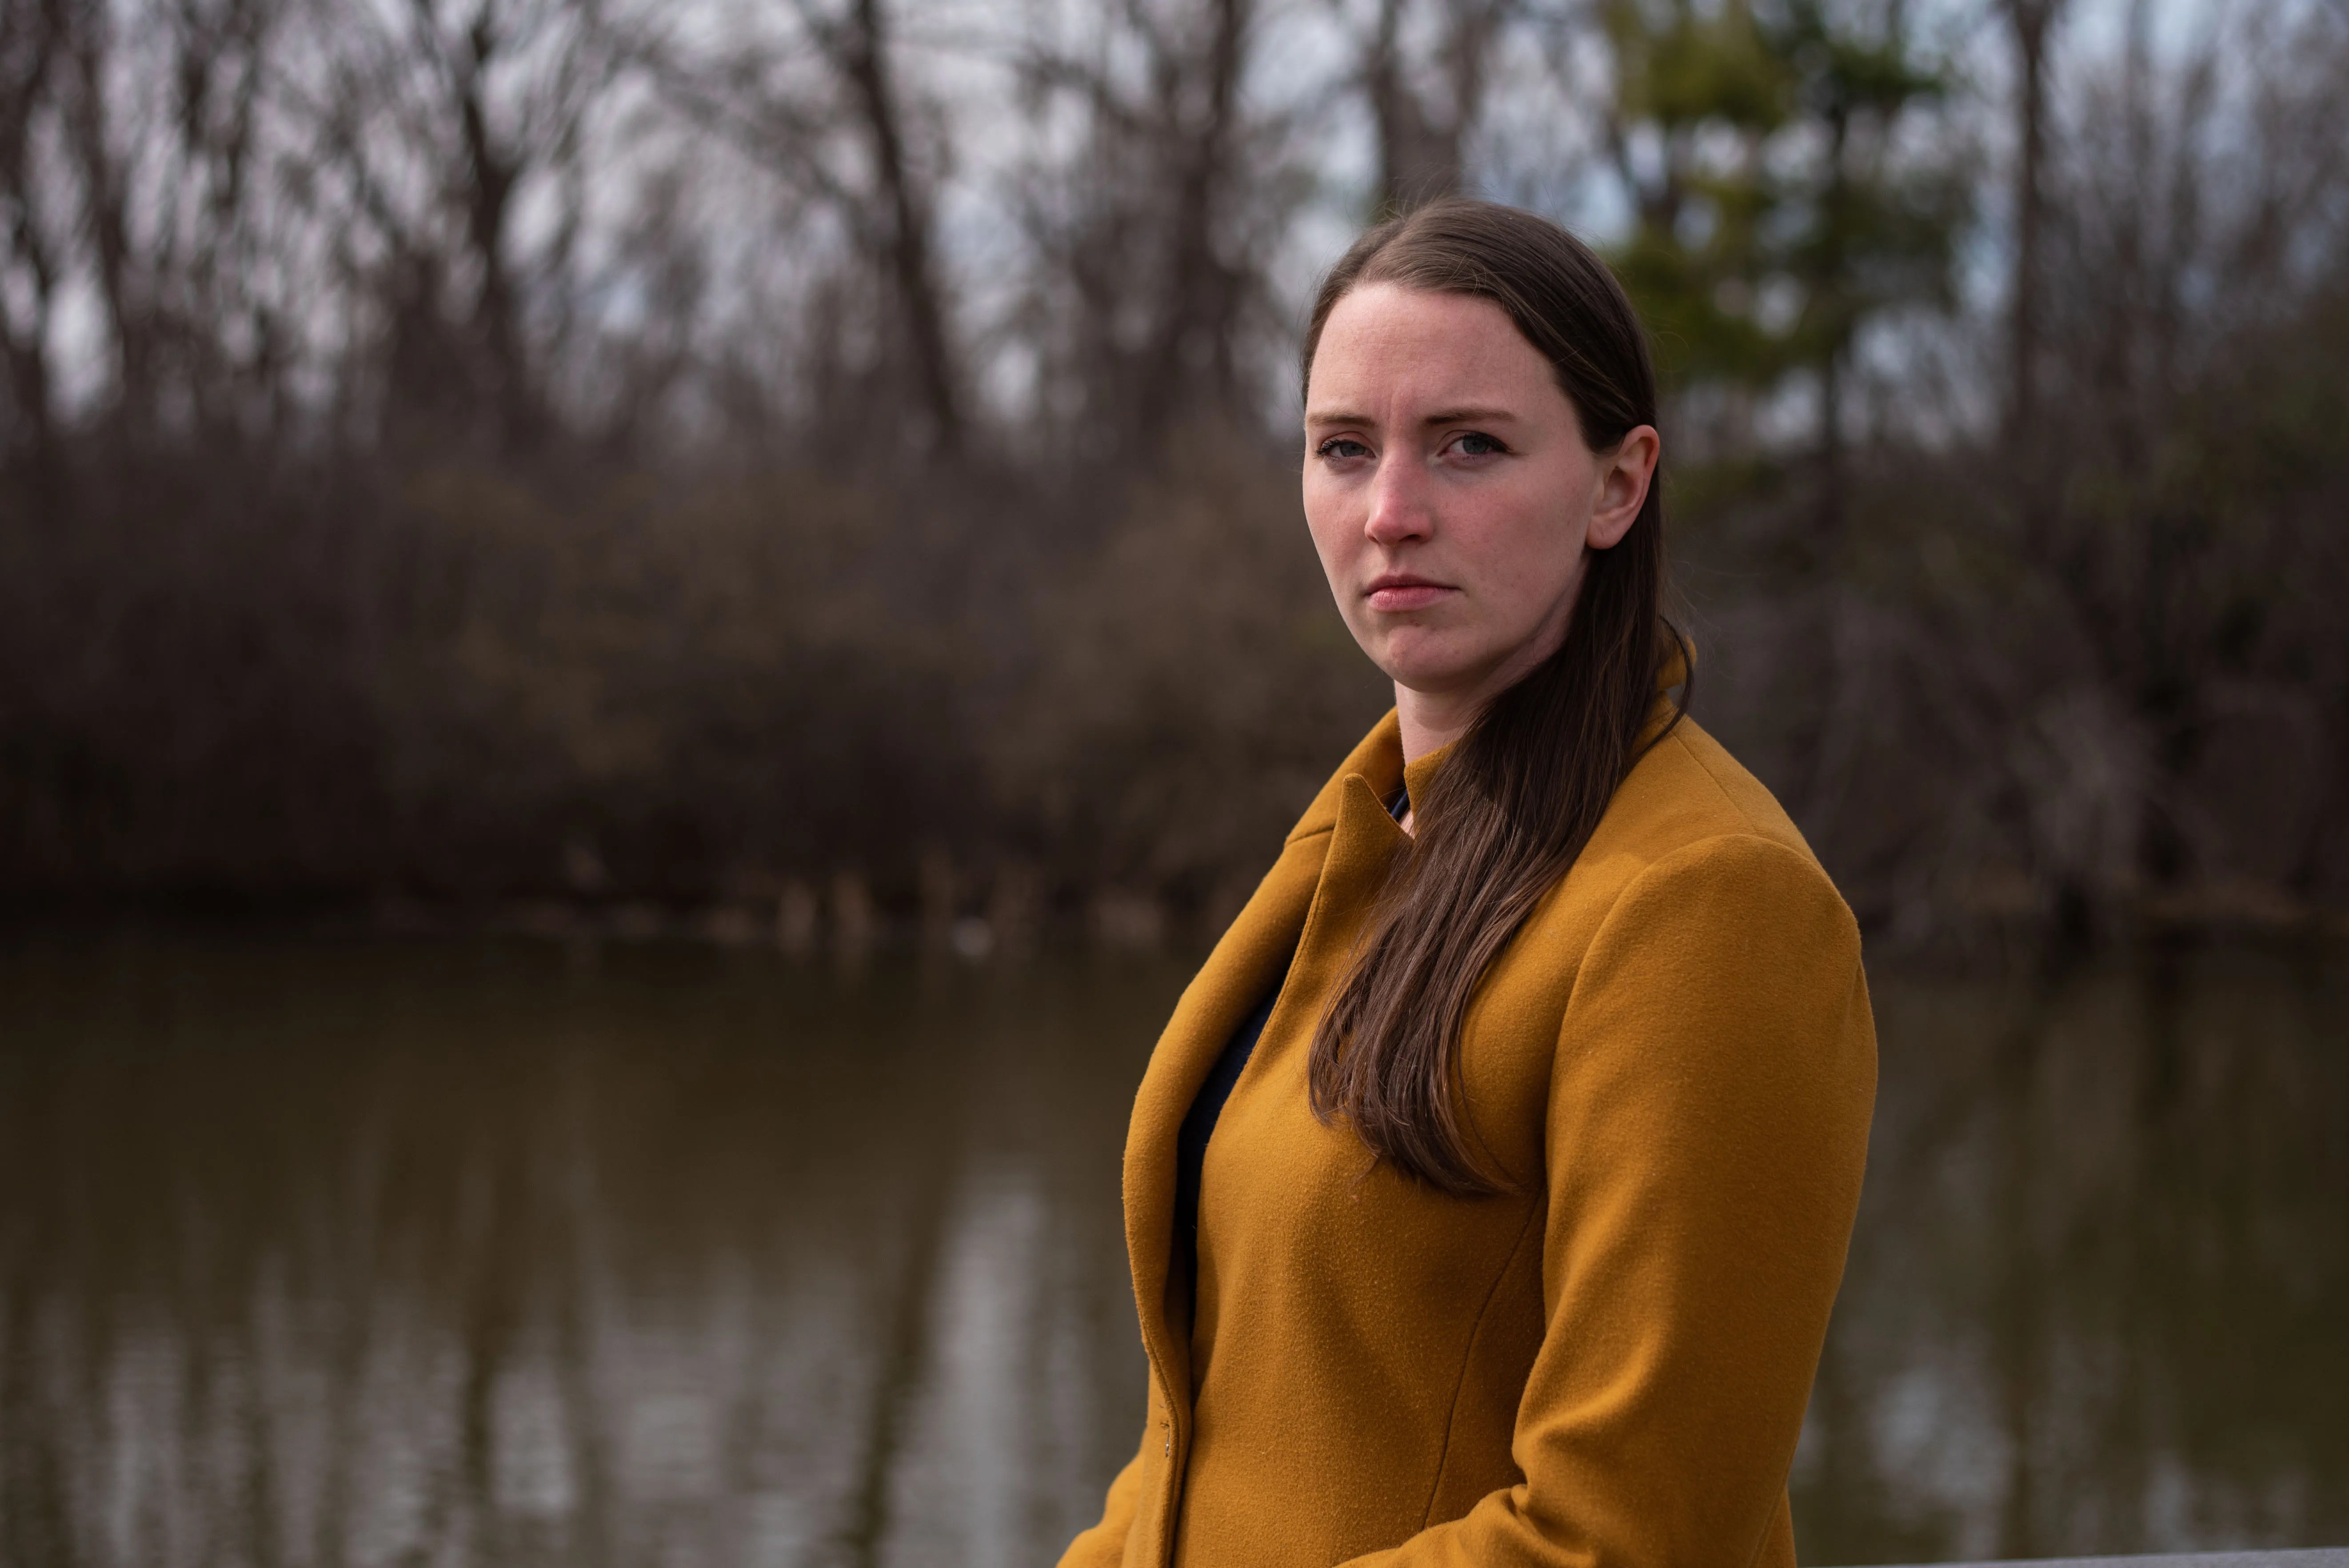 Rachel Horvath, 26, of Buffalo, photographed in Buffalo on Saturday, April 3, 2021, was a camp counselor at Circle C Ranch in 2011. Horvath alleges Wayne Aarum's physical and verbal behavior toward her then was inappropriate and abusive.